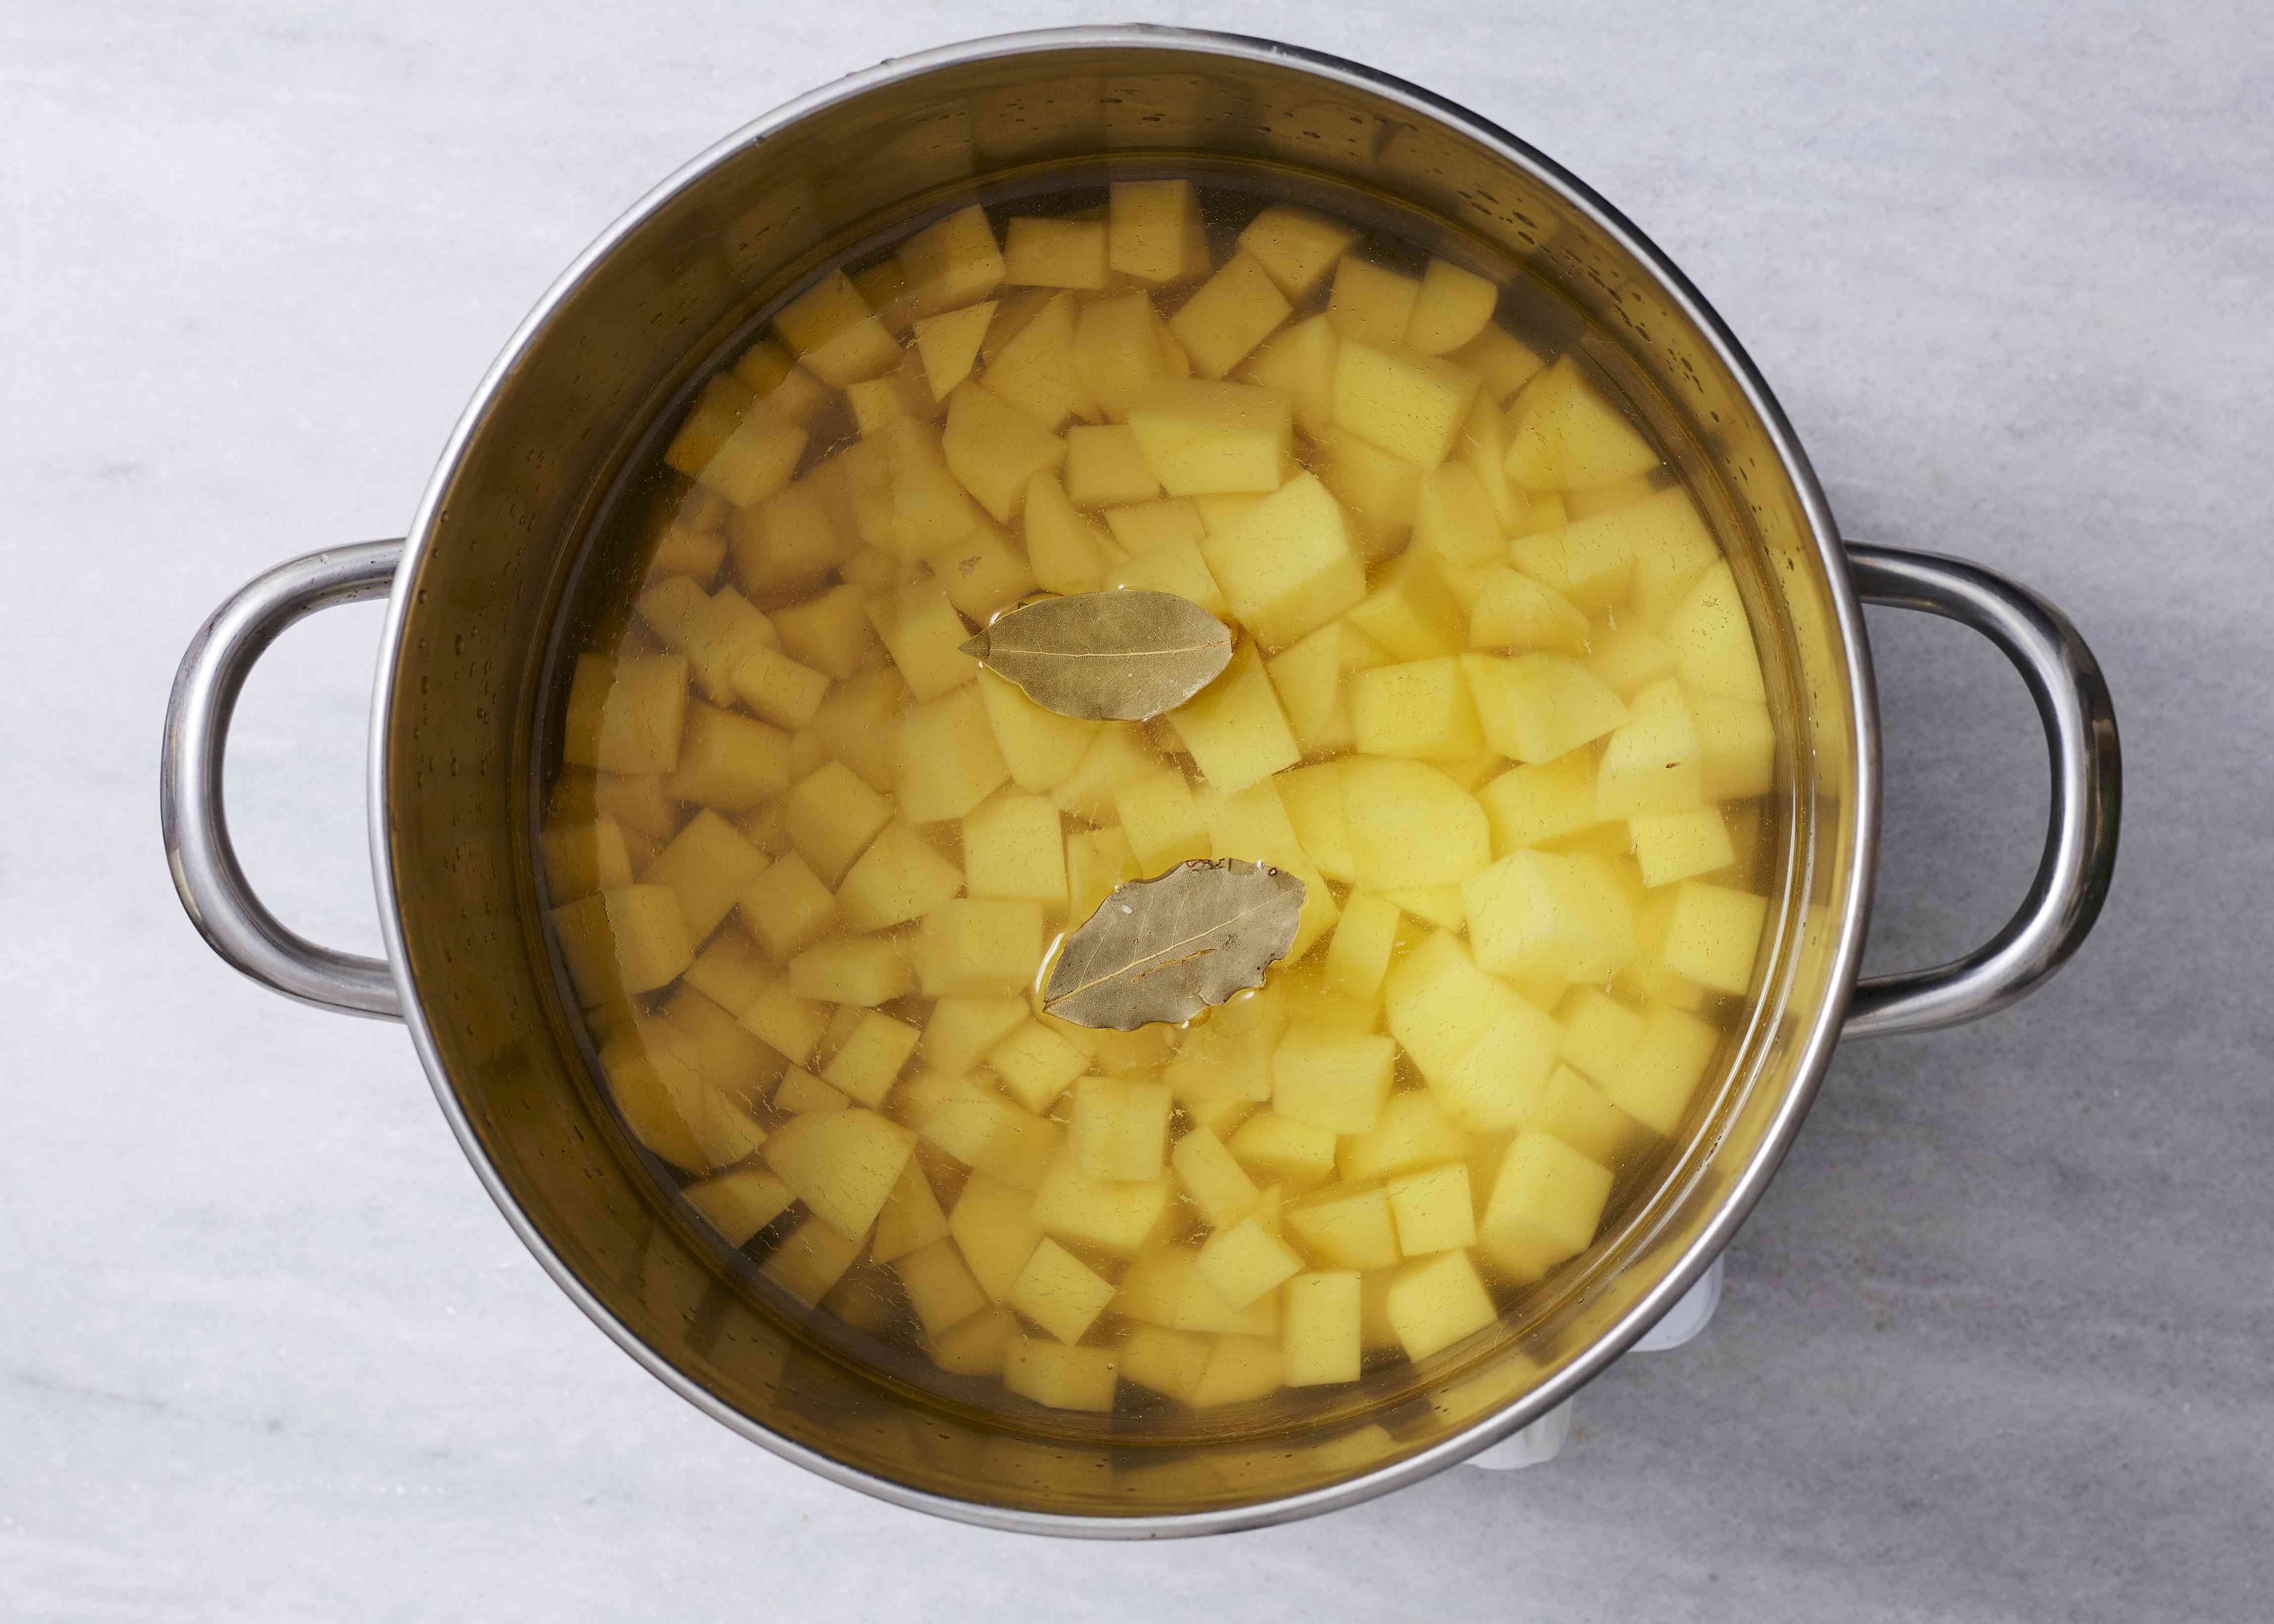 boil the potatoes and the bay leaves in salted water